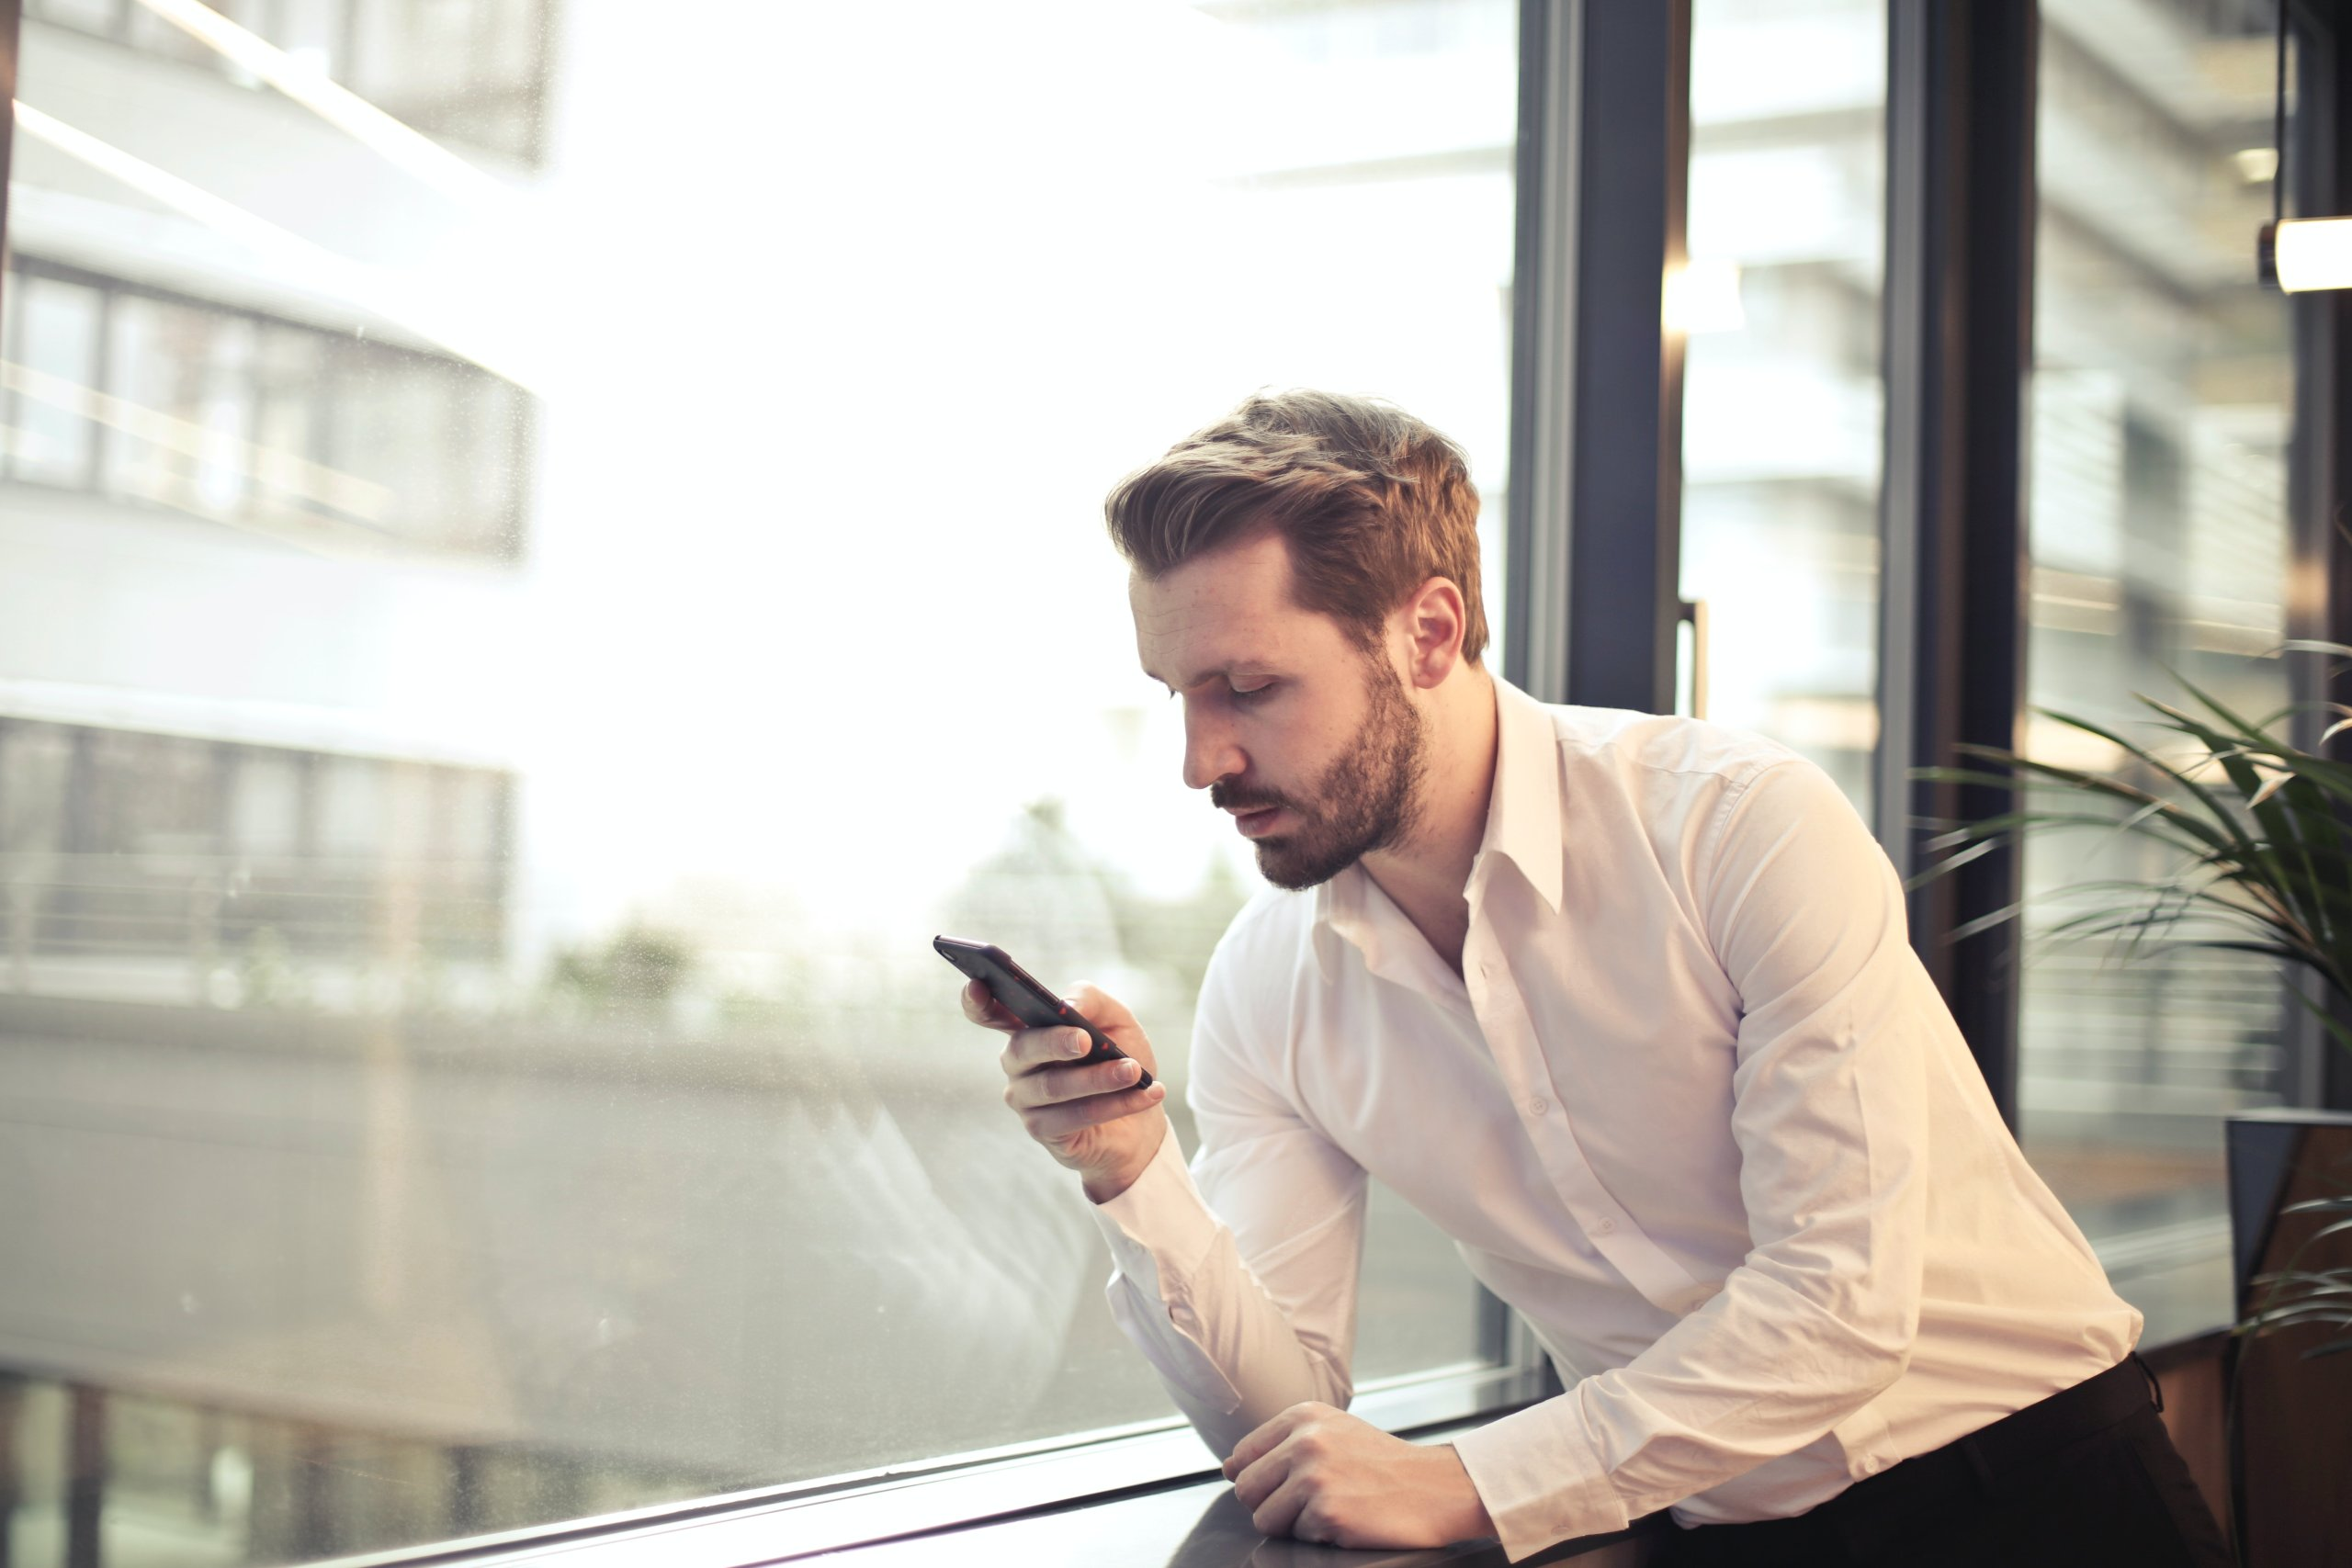 photo-of-man-in-white-dress-shirt-holding-phone-near-window-859265 (1)